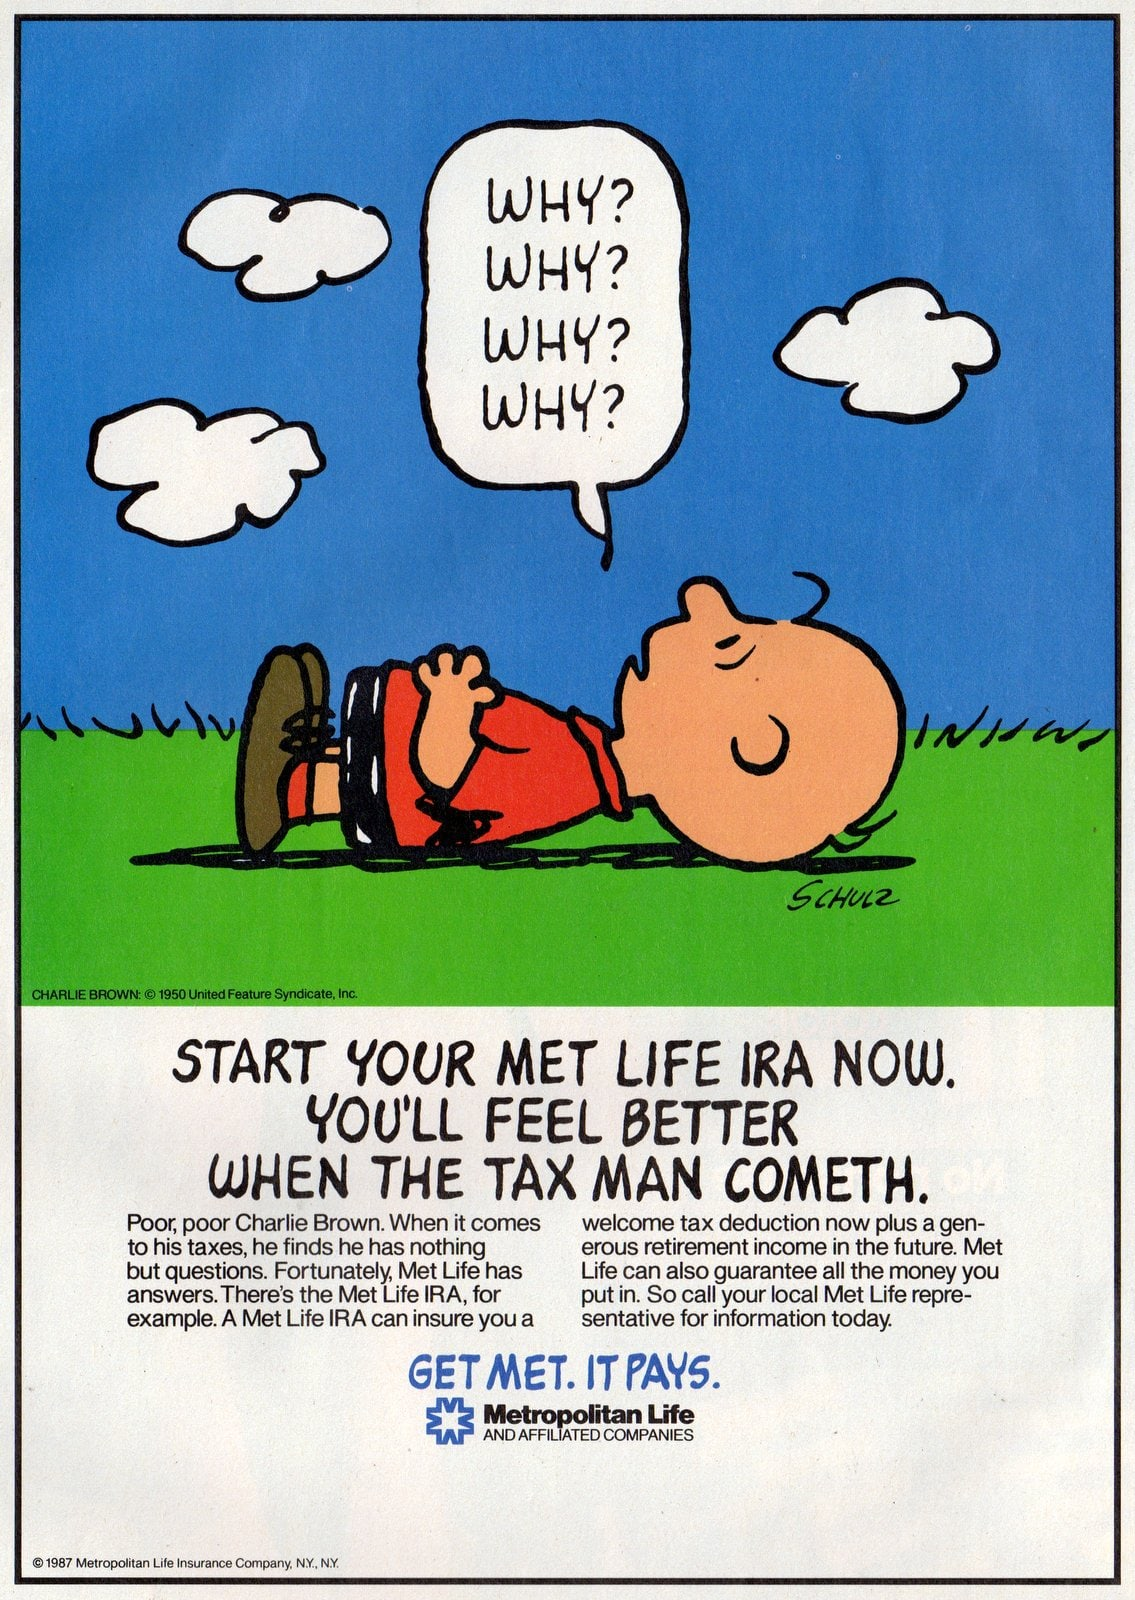 Charlie Brown - Peanuts for Met Life (1987)